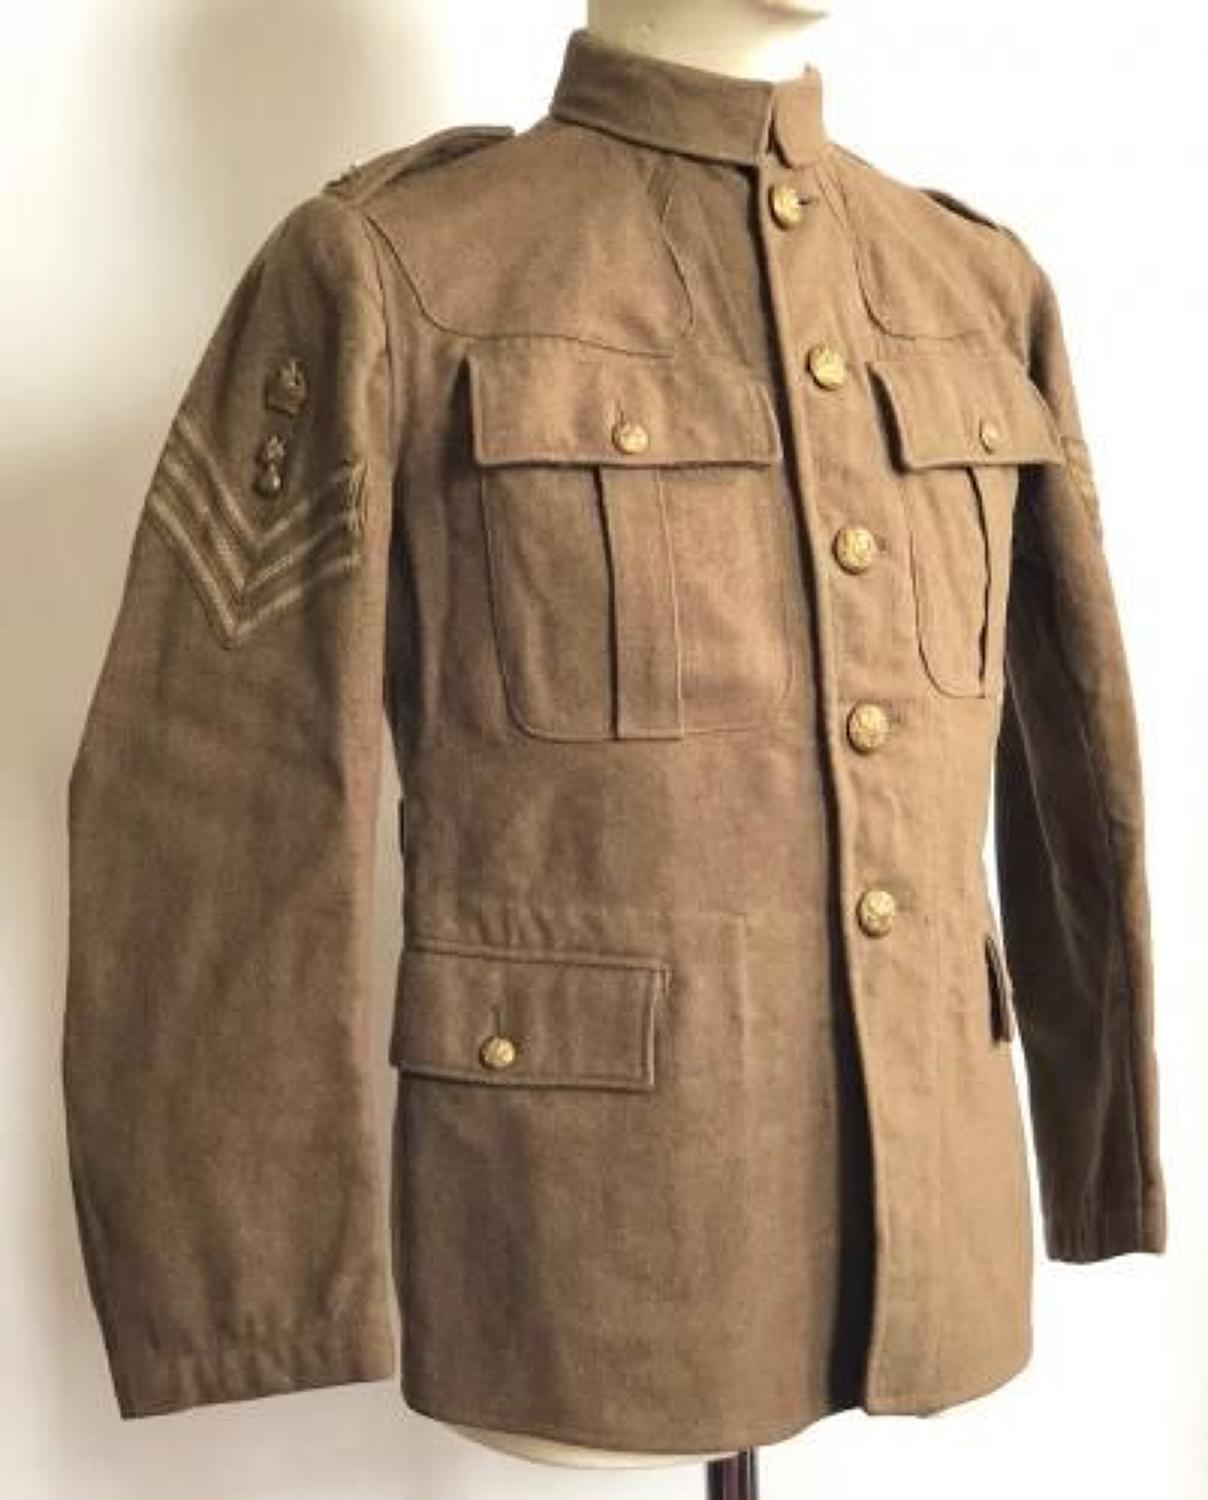 WW1 1915 Dated Royal Engineers 1902 Pattern Other Ranks Tunic.